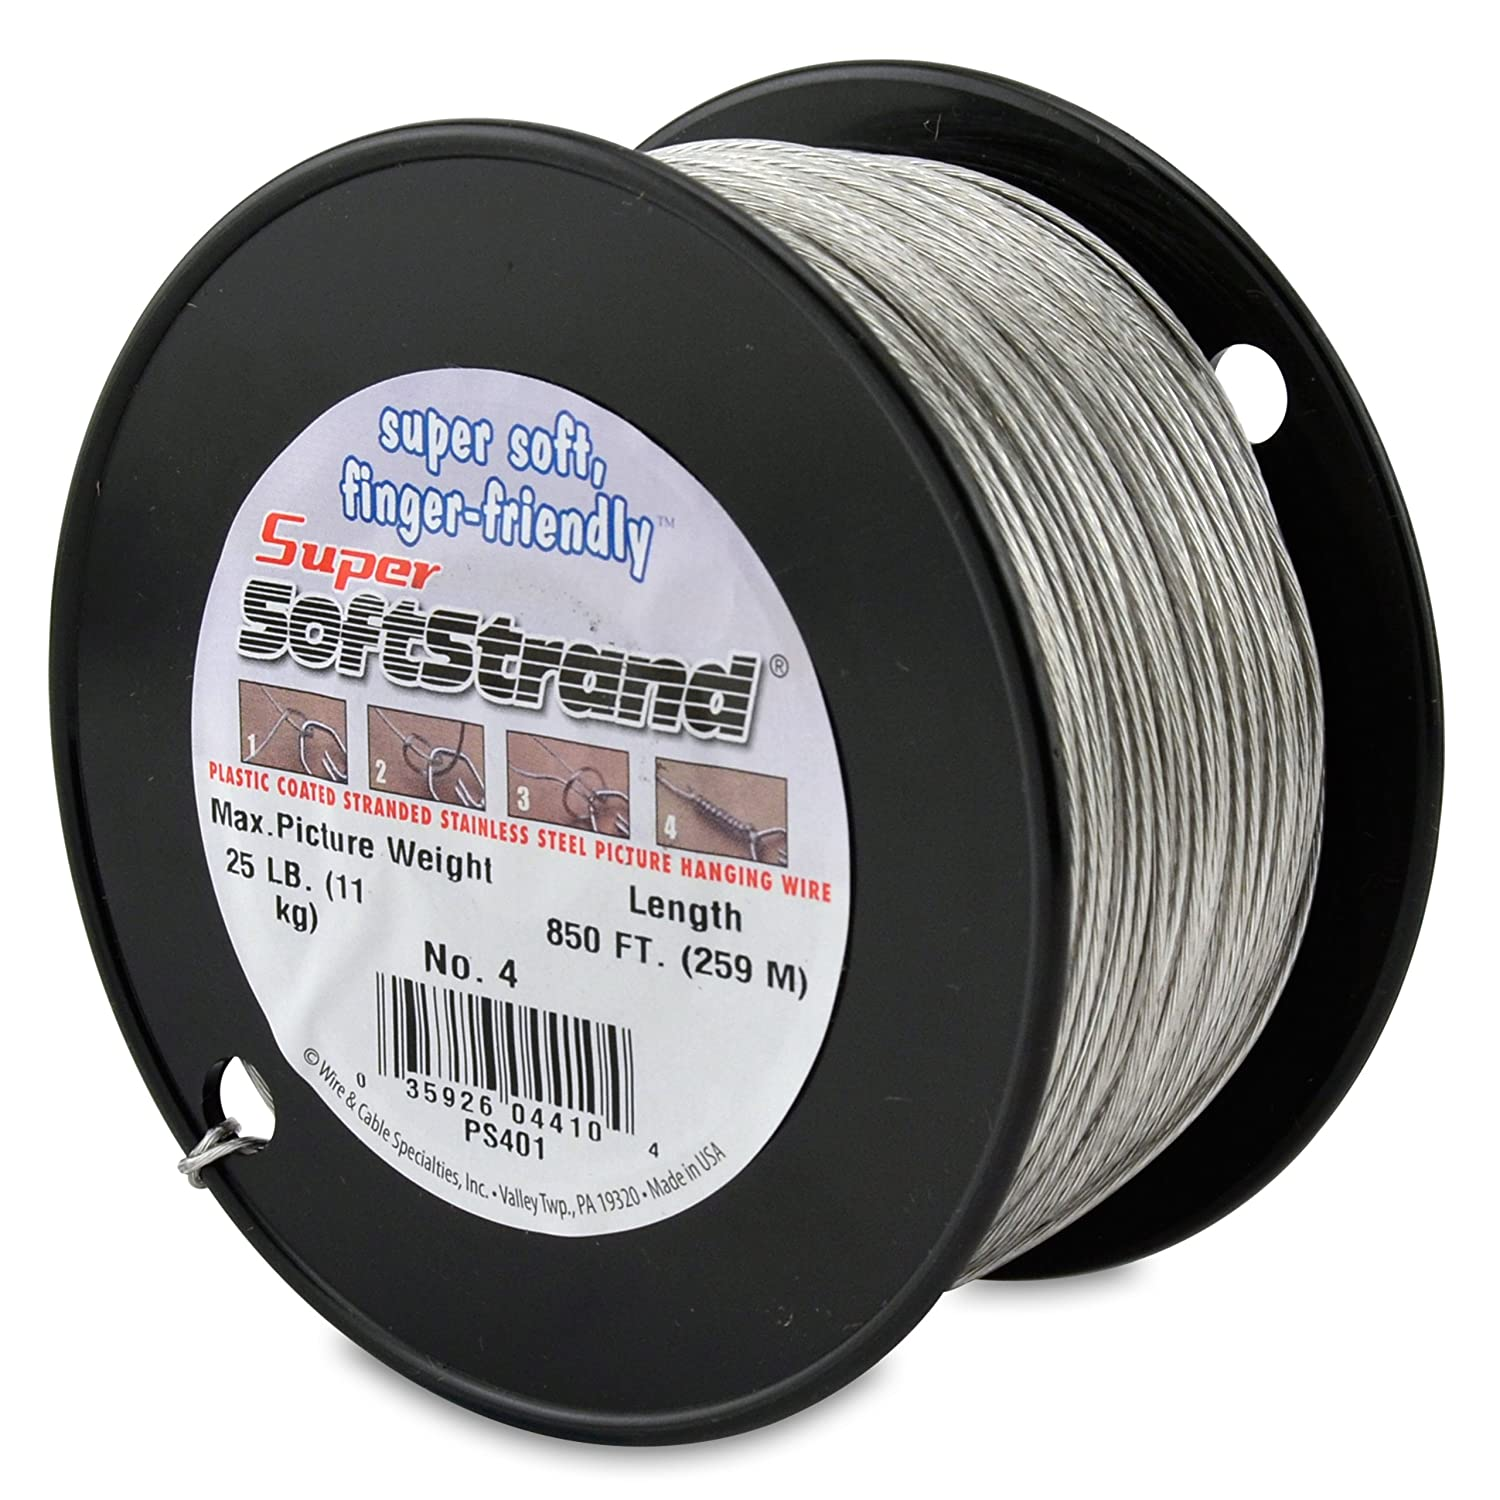 Supersoftstrand Size 4 850 Feet Picture Wire Vinyl Metal Jacket Wiring Coated Stranded Stainless Steel Arts Crafts Sewing